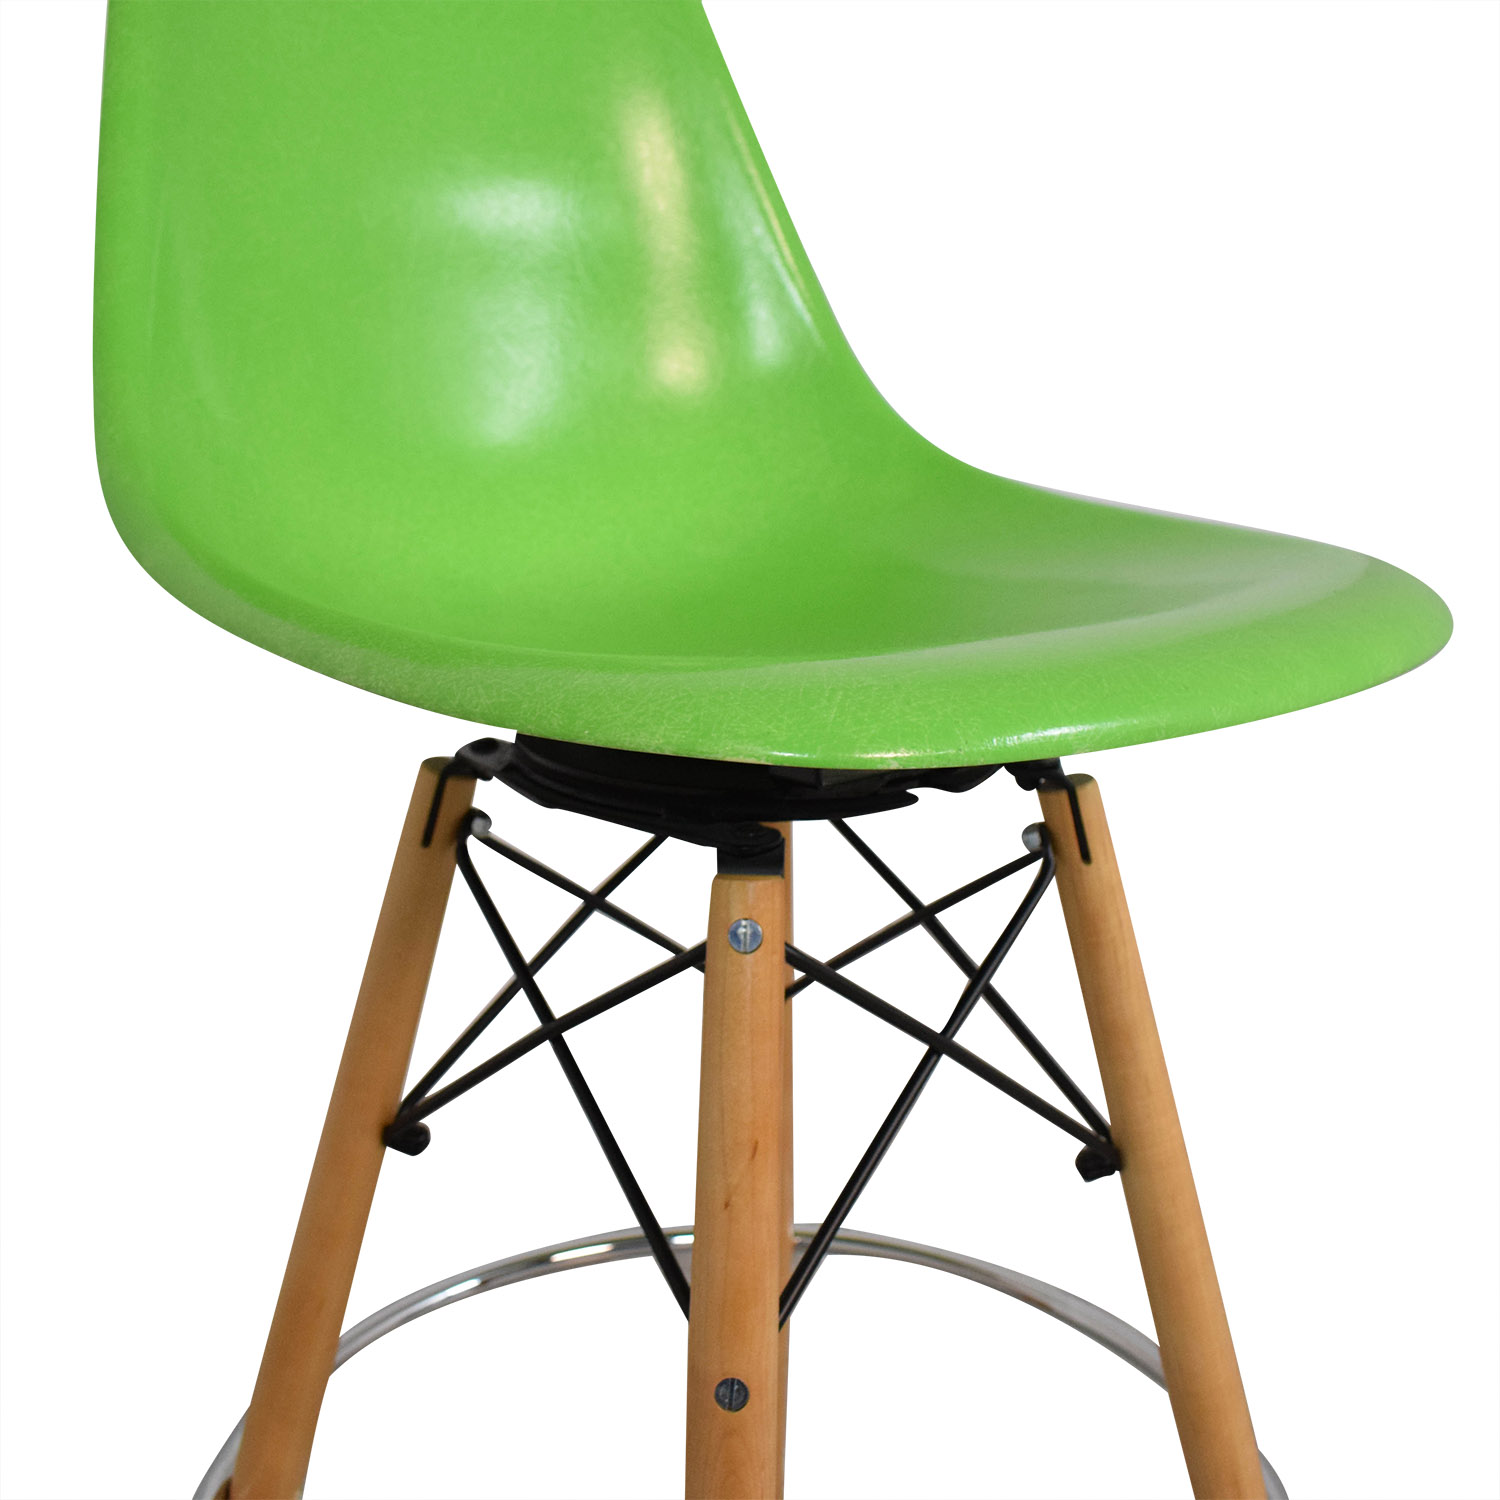 Modernica Modernica Case Study Side Shell Dowel Bar Stool dimensions